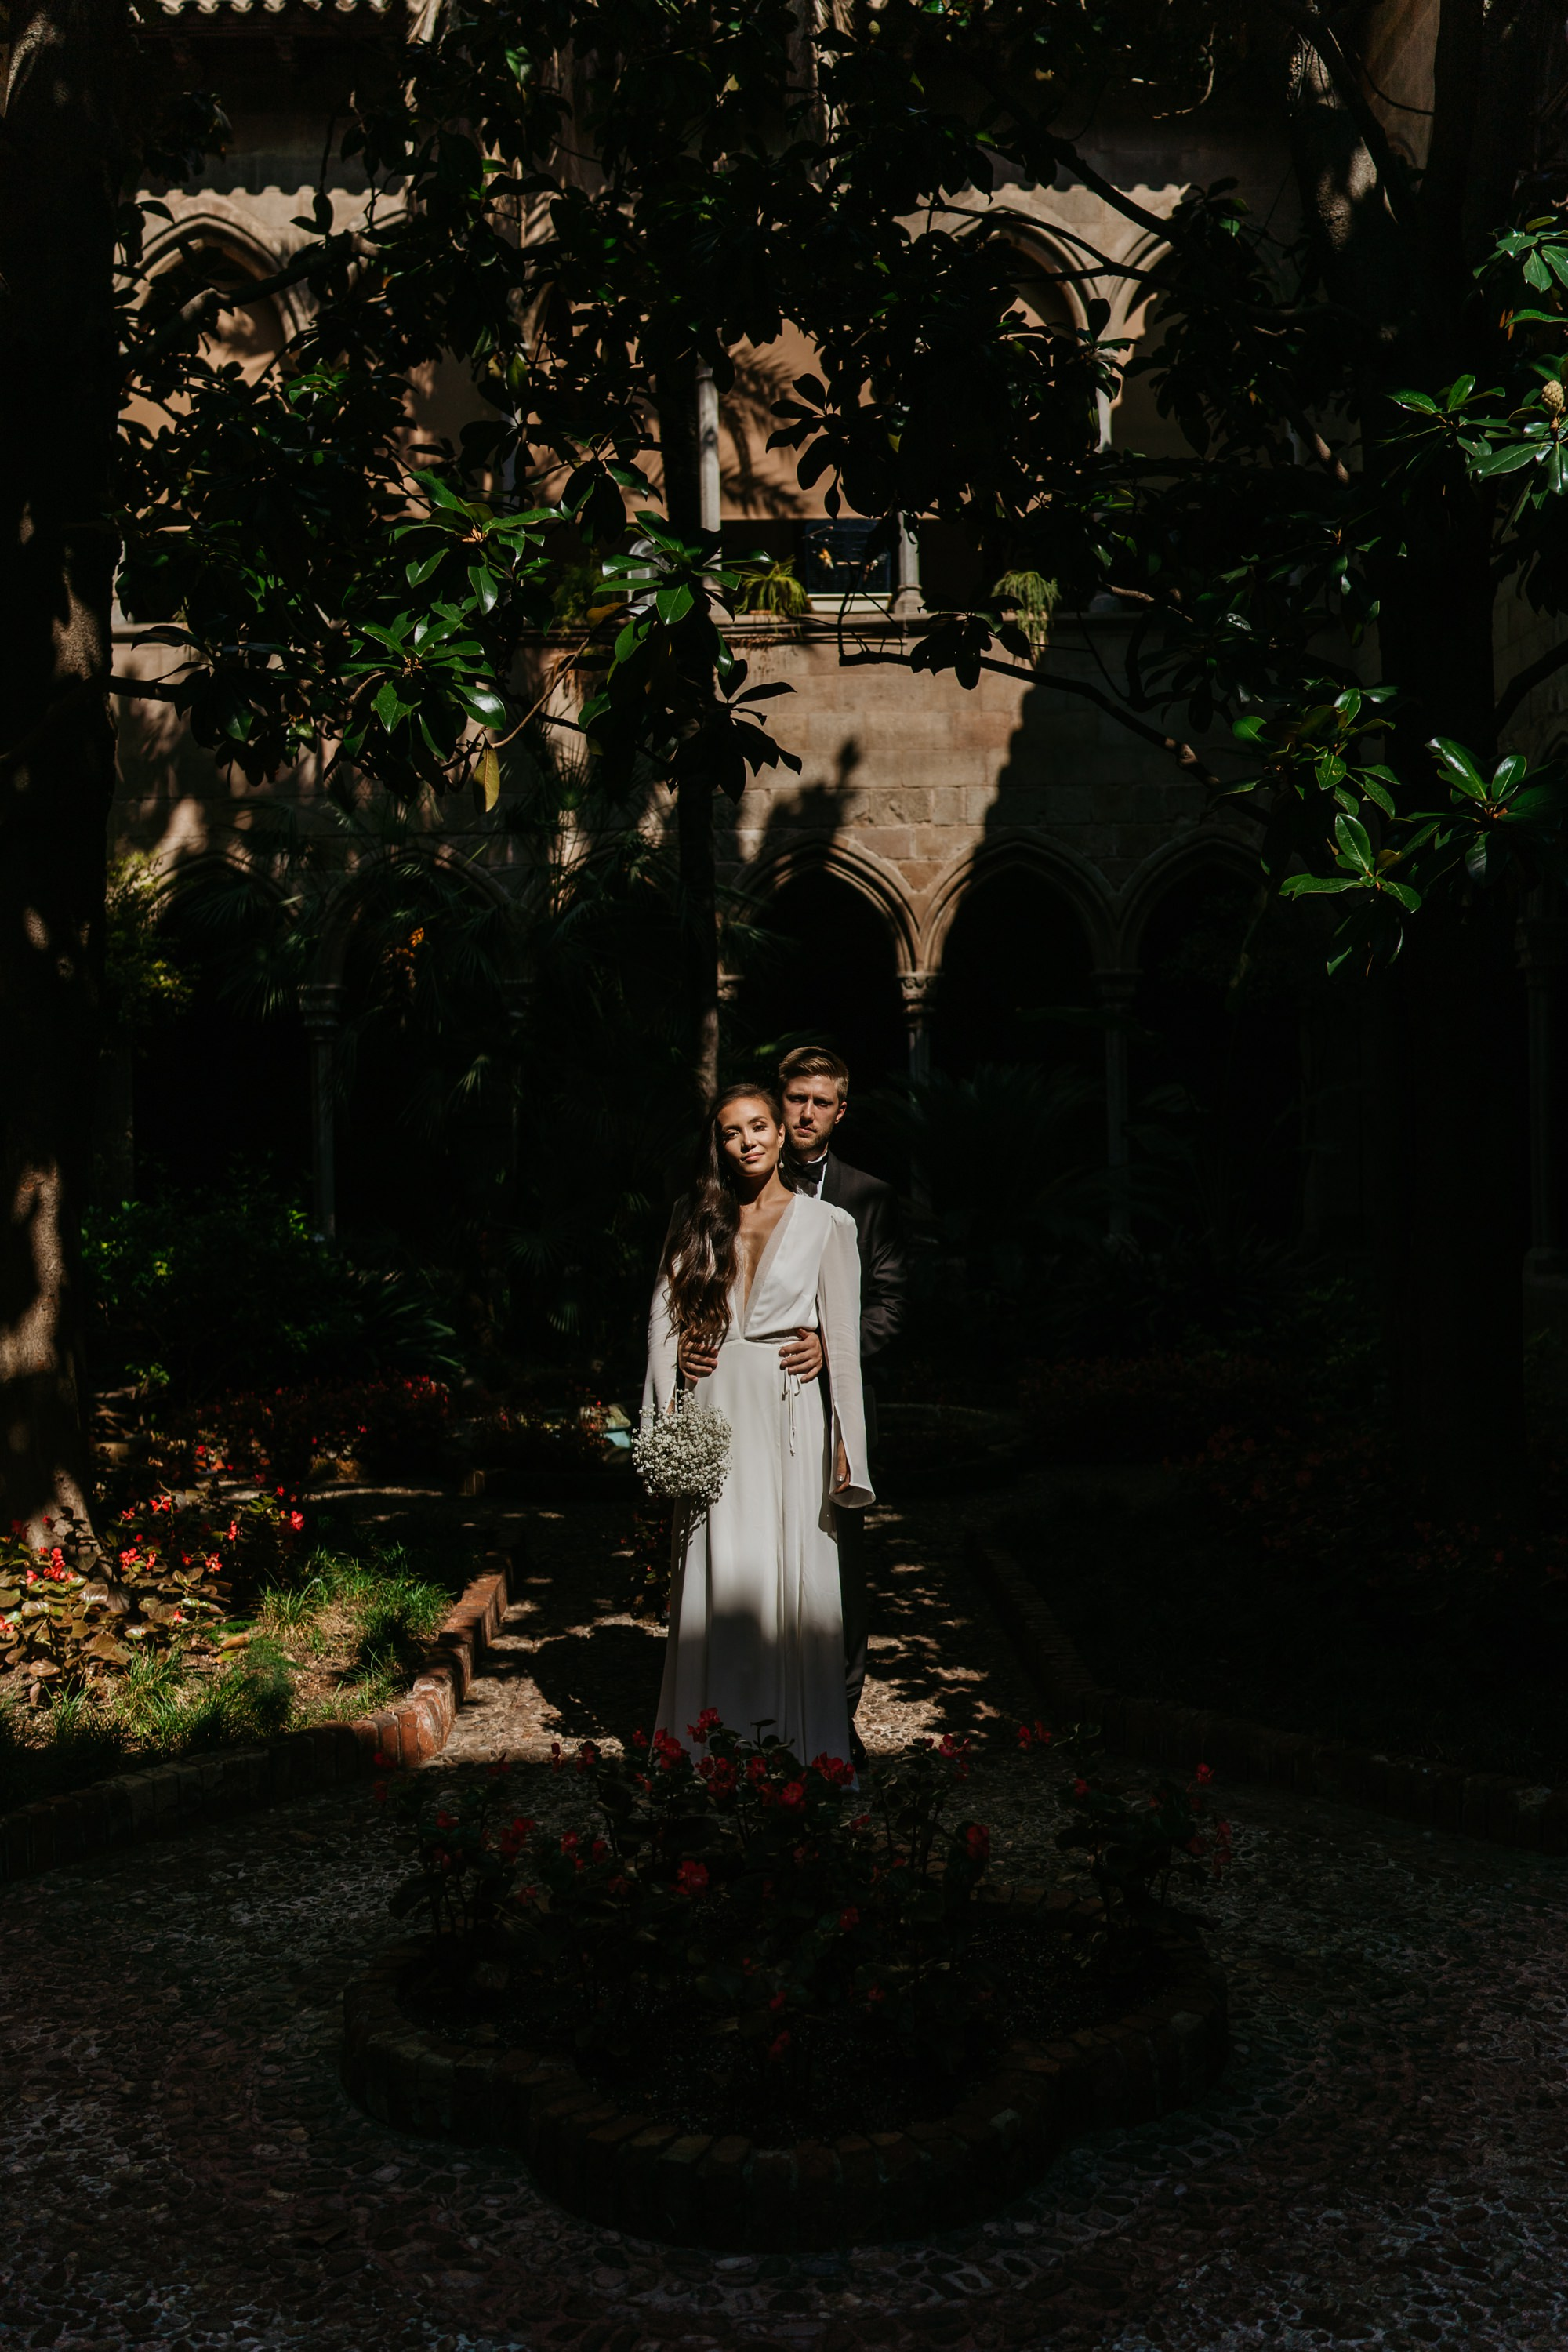 natural wedding photography private wedding barcelona 0152 1